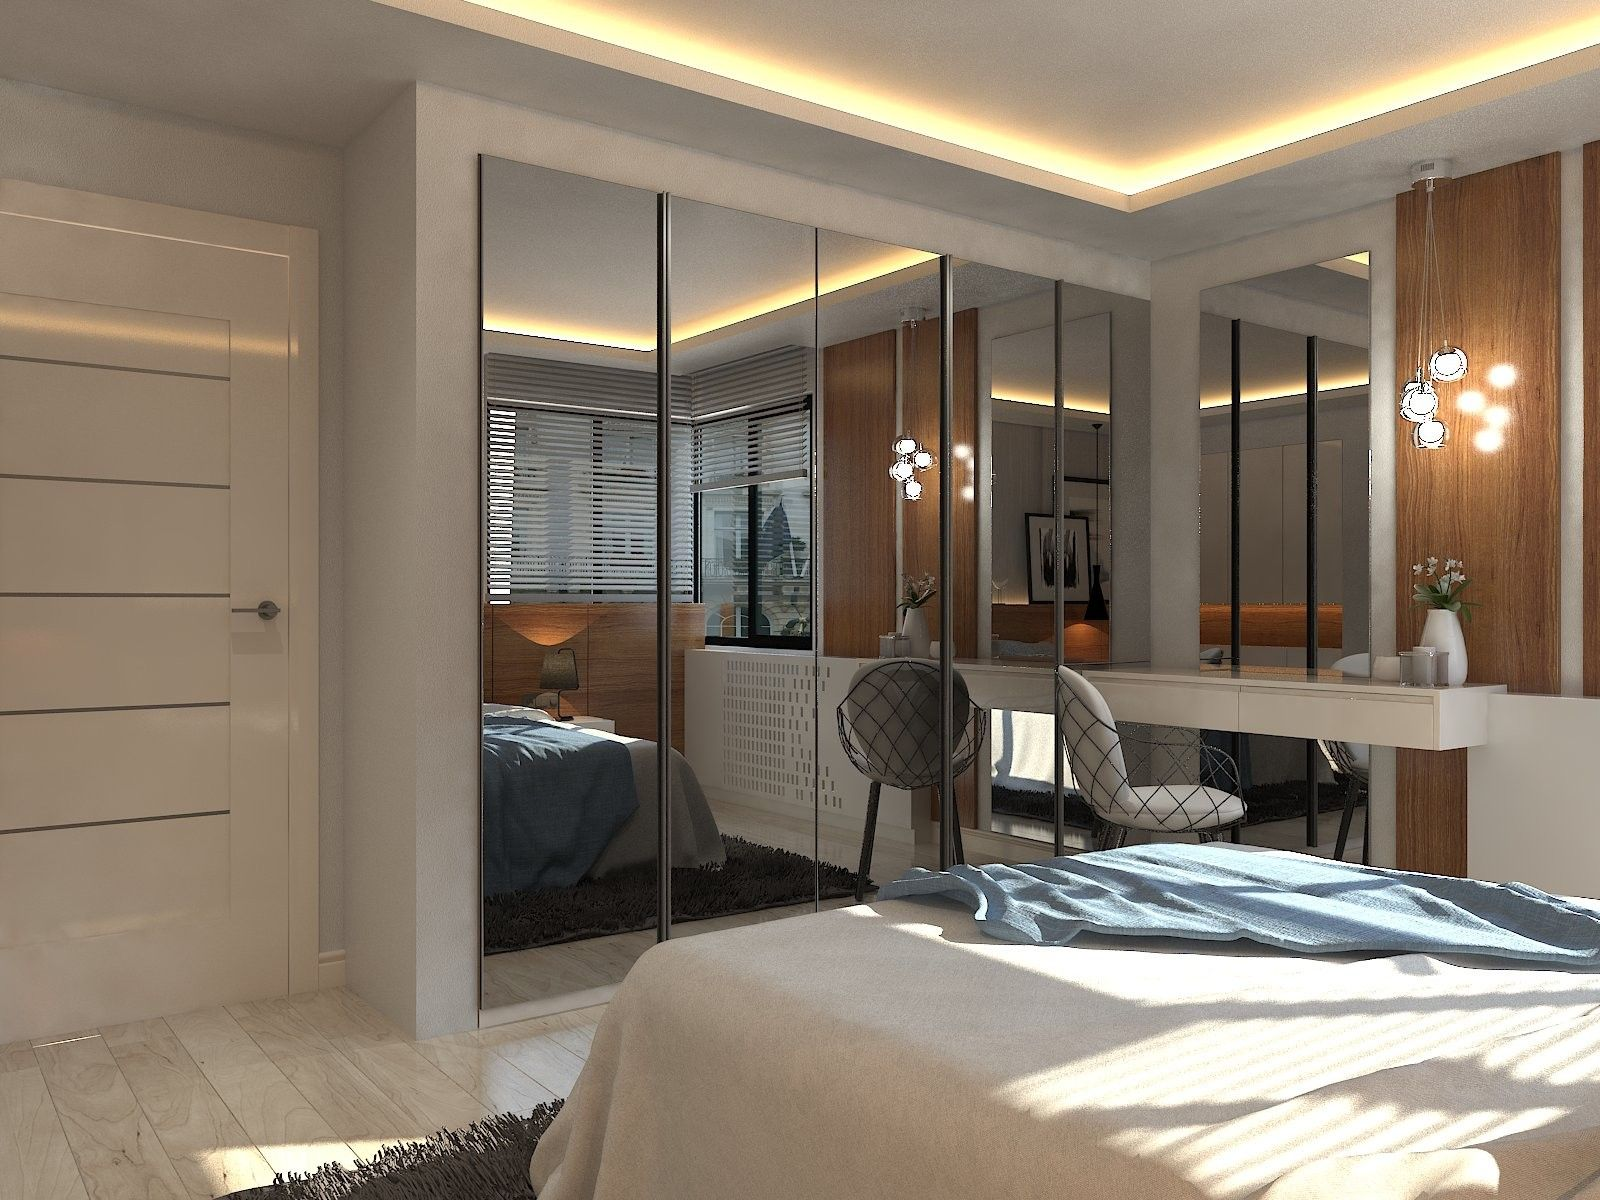 Architecture Bedroom design interior mirror wardrobe